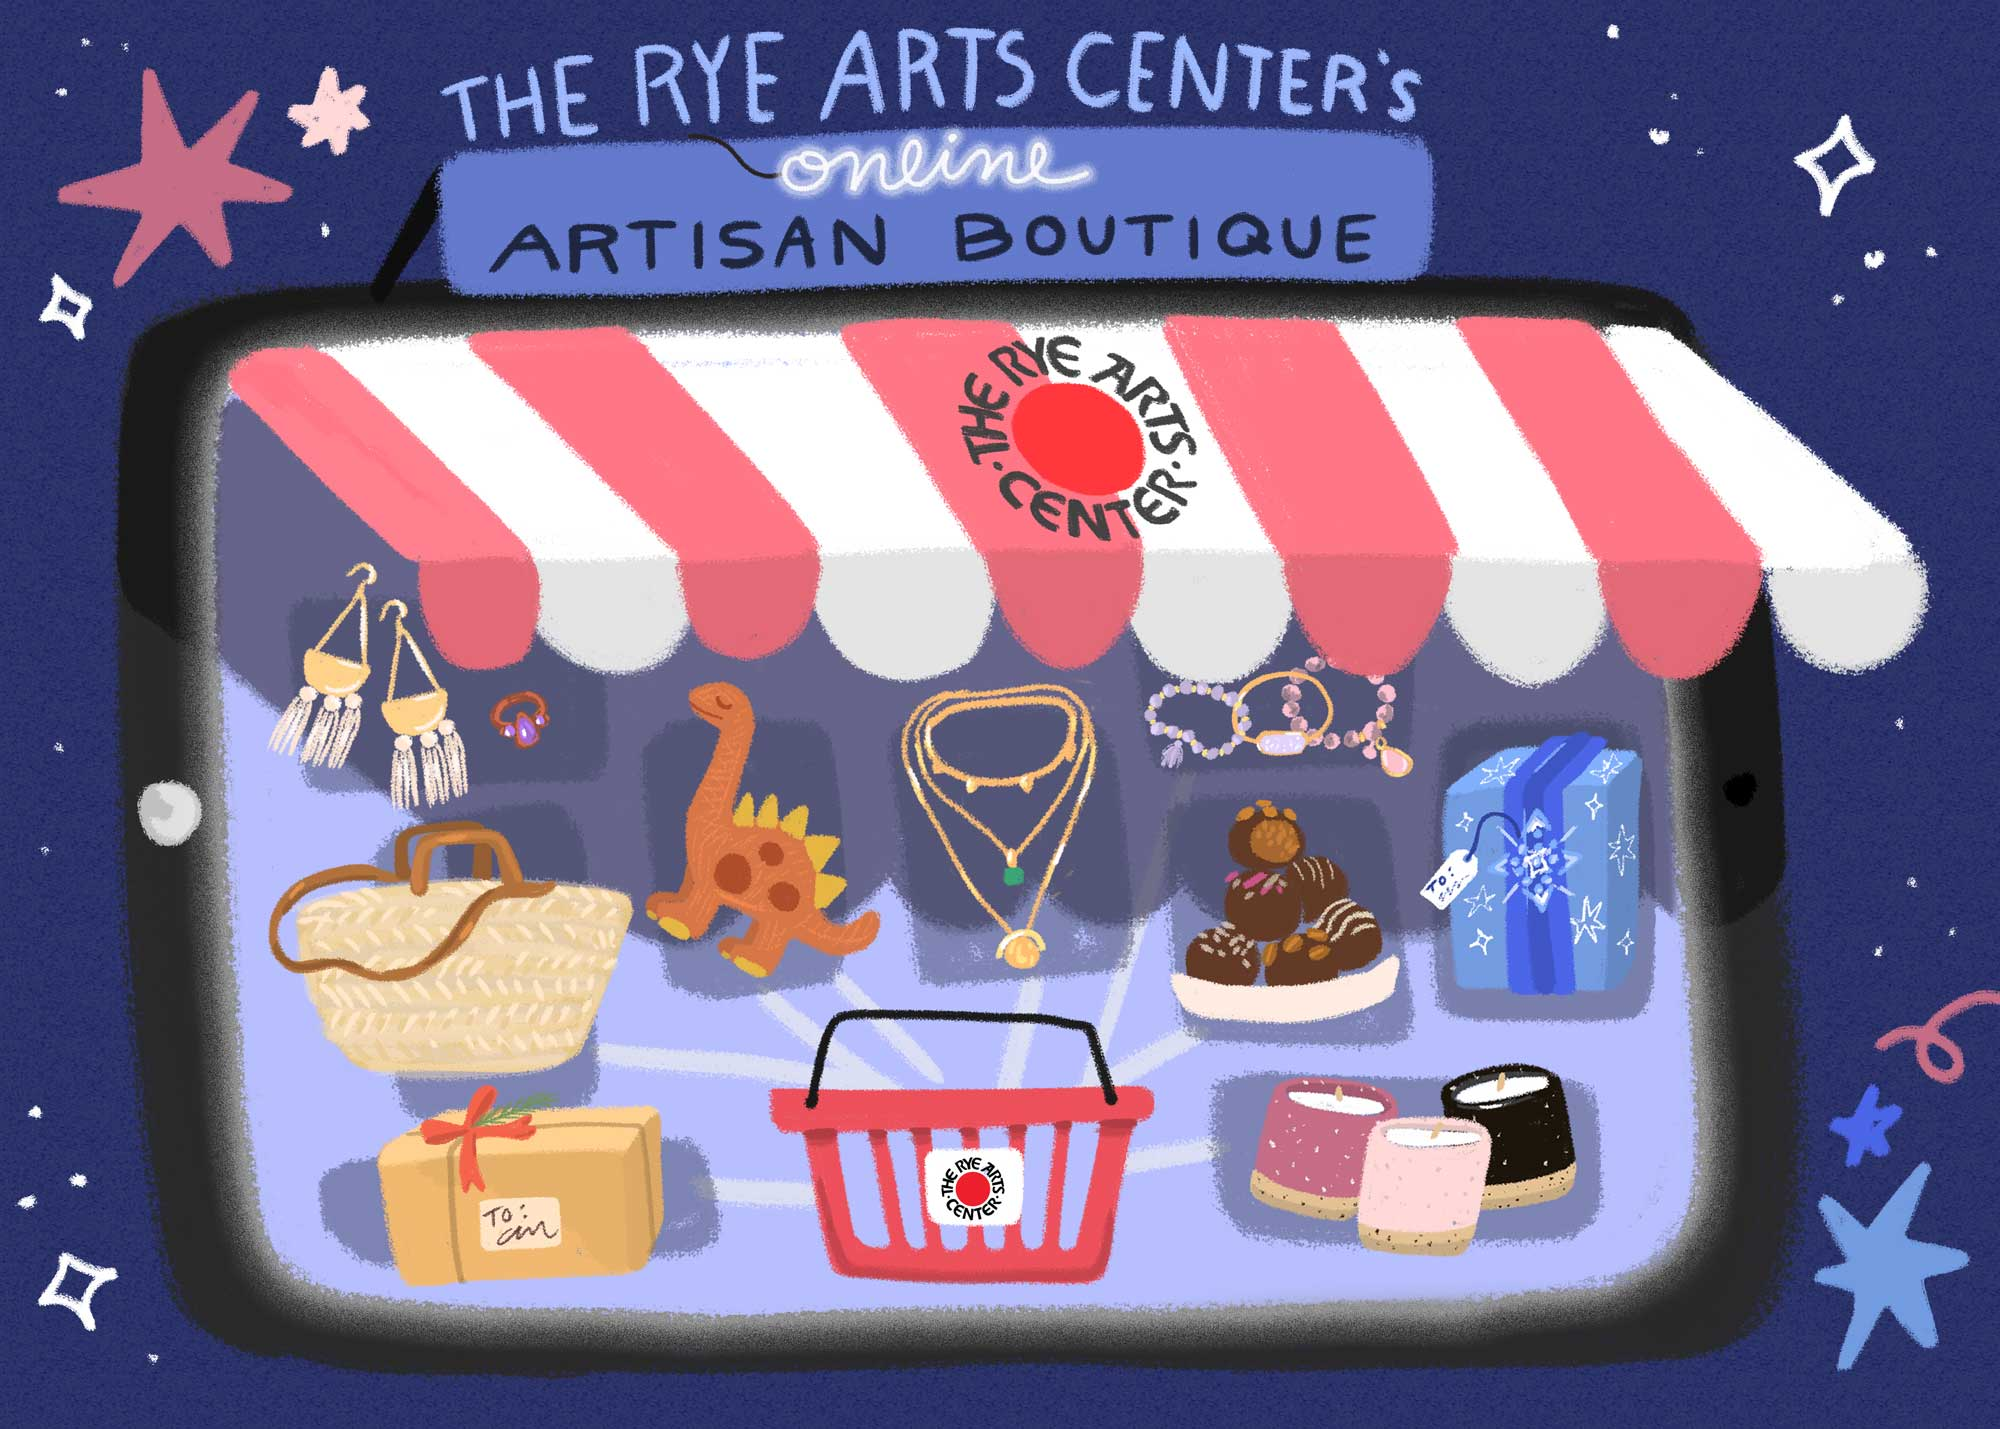 ONLINE Artisan Boutique at The Rye Arts Center